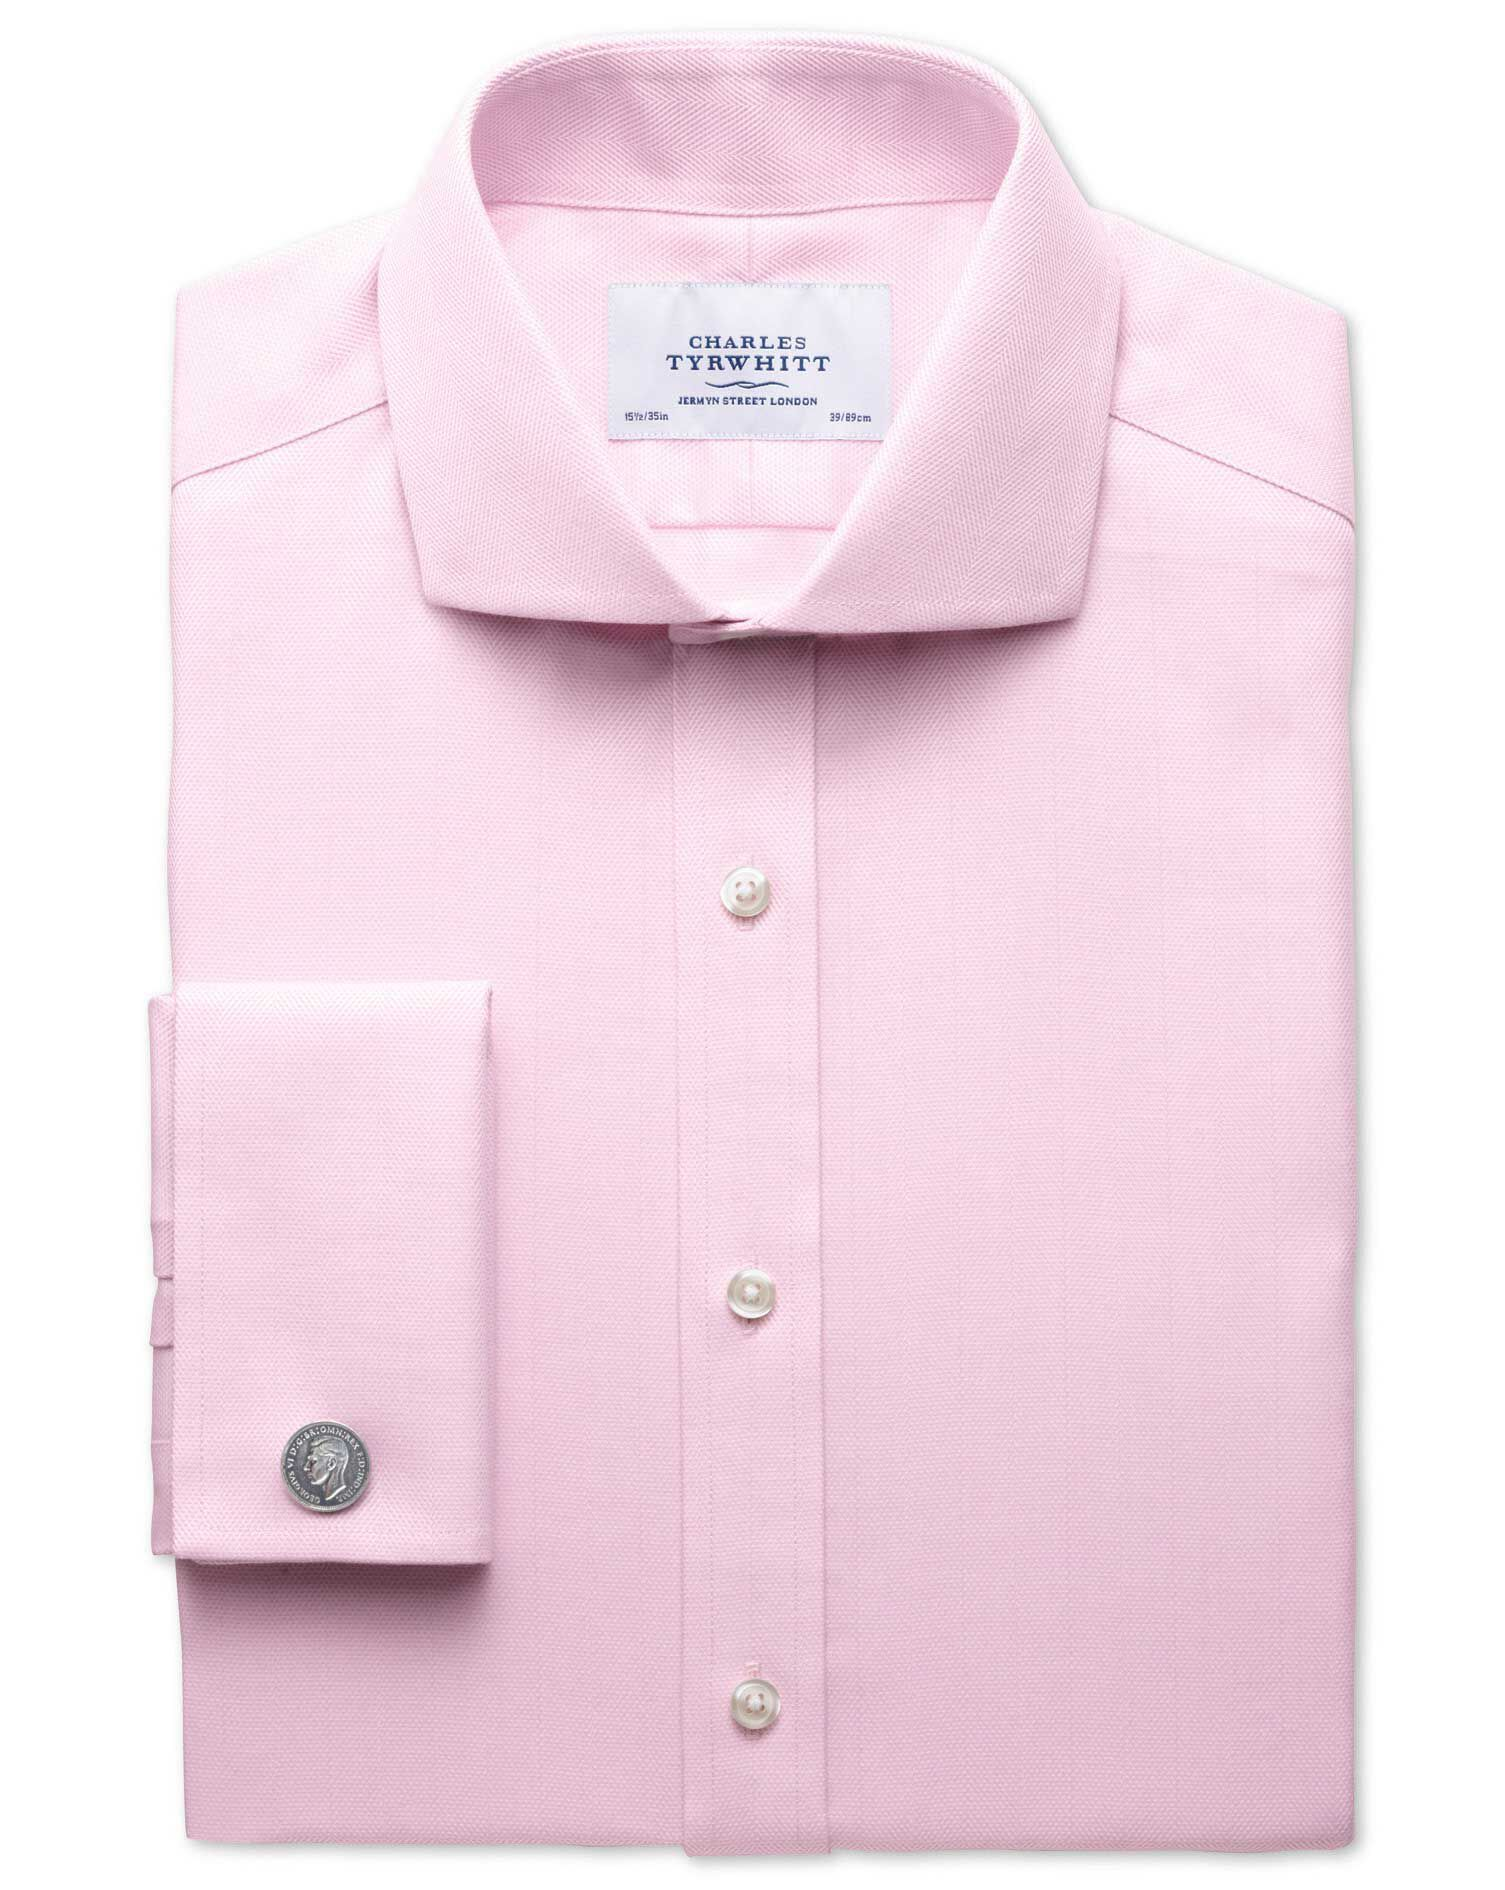 Slim Fit Cutaway Collar Non-Iron Herringbone Light Pink Cotton Formal Shirt Single Cuff Size 15.5/33